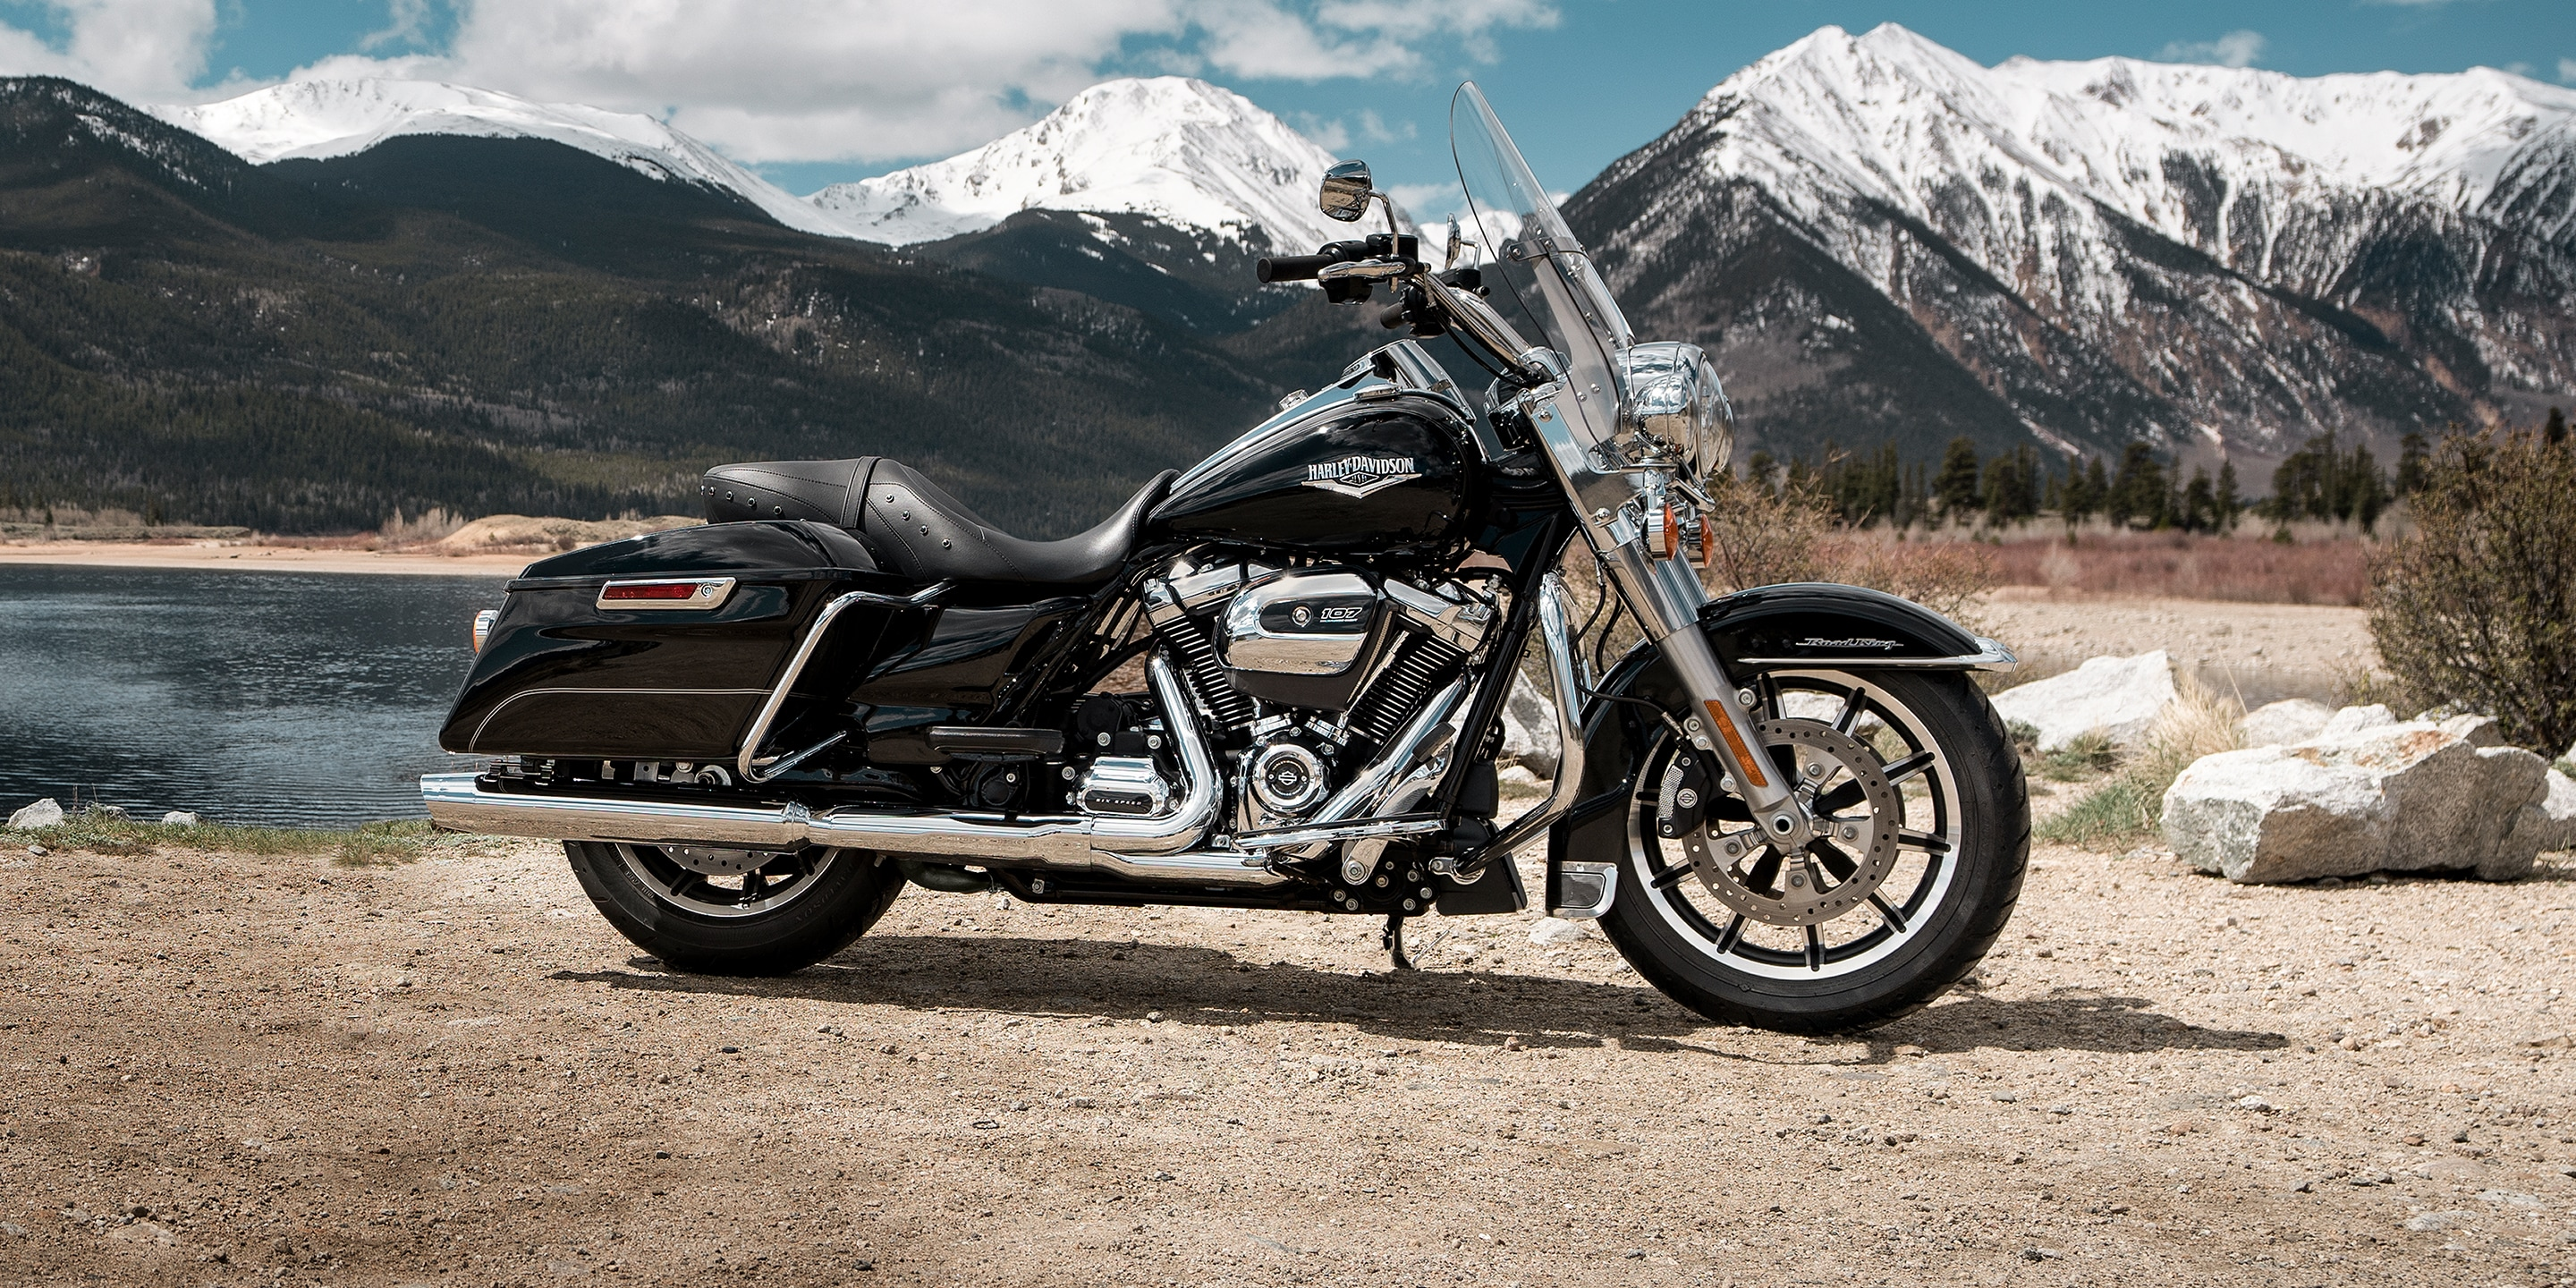 2019 Road King motorcycle parked by mountain scenery